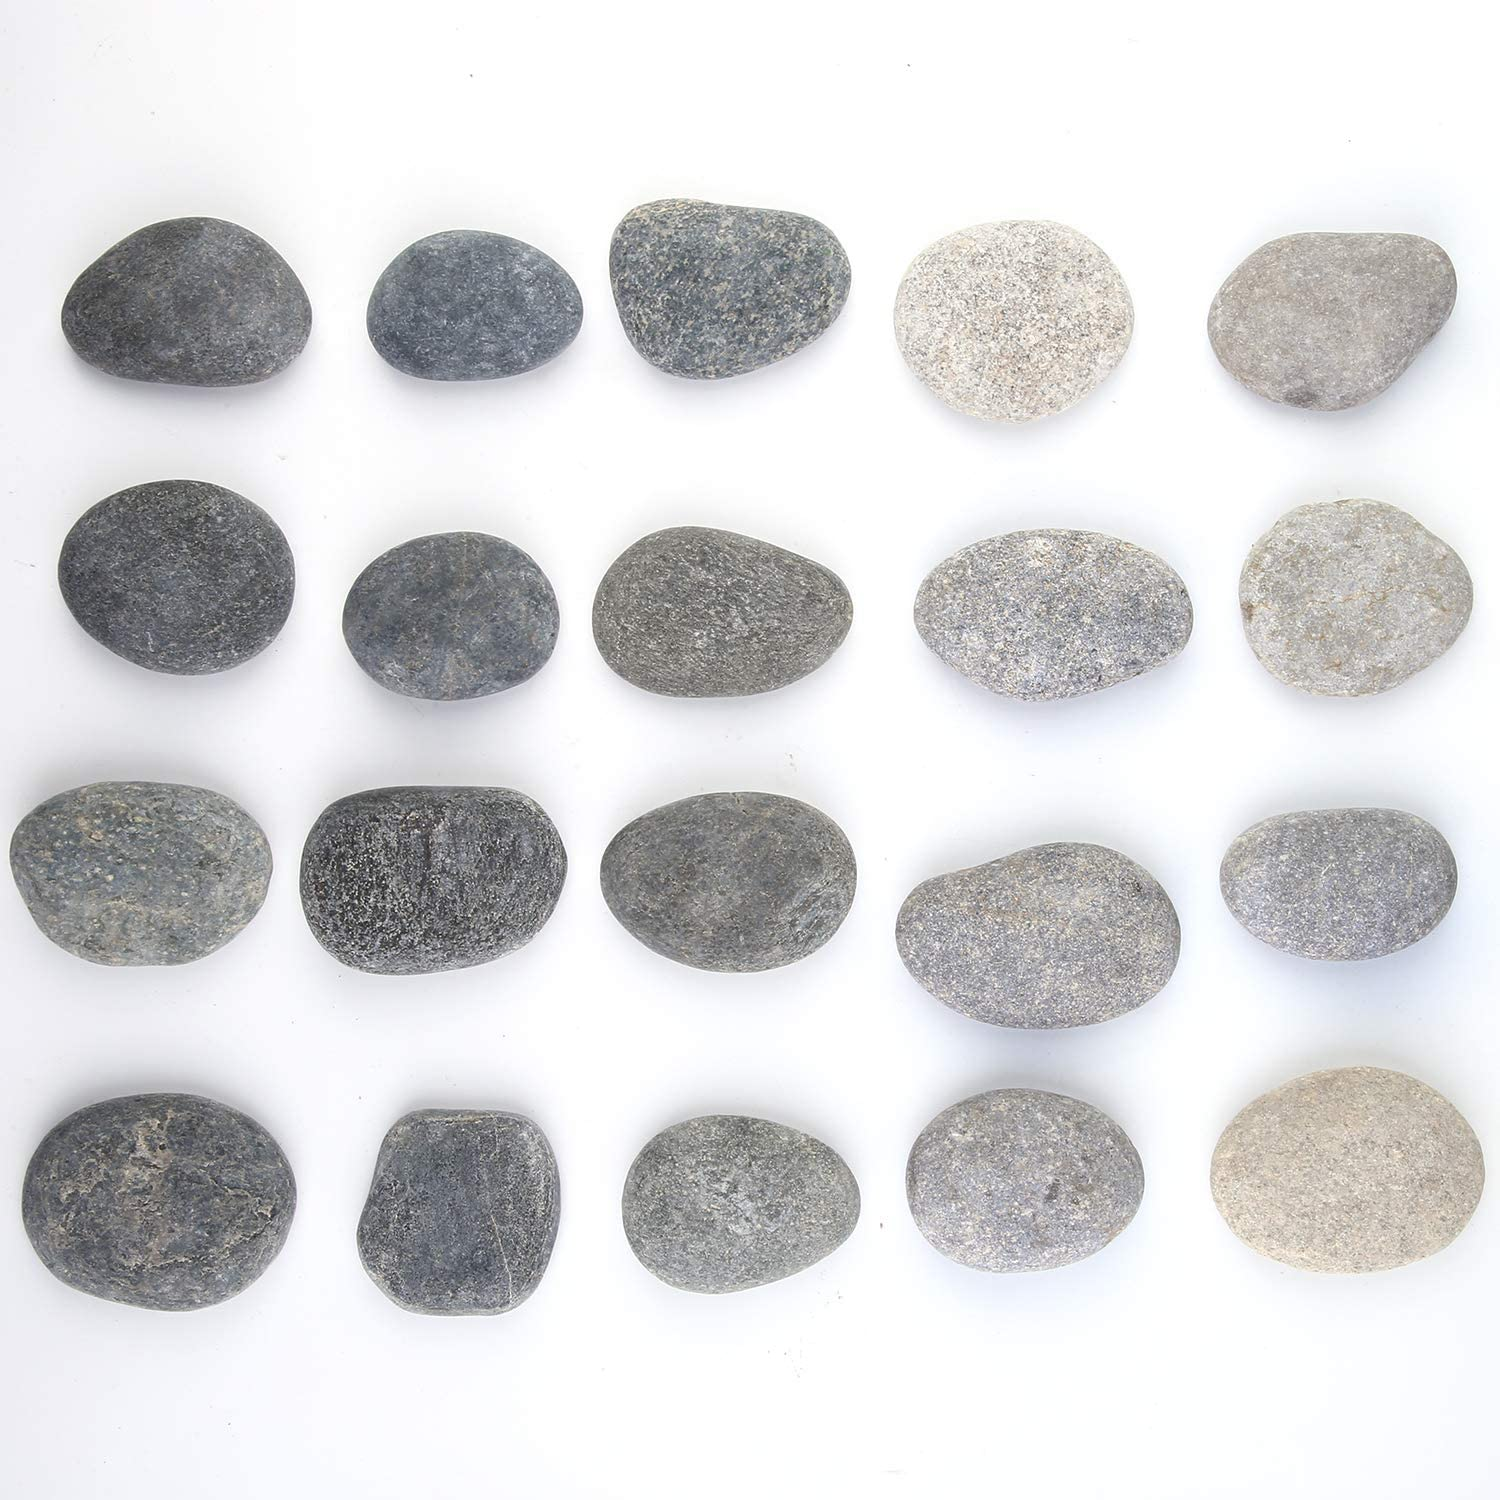 and Decoration Black, Gray Crafts Aneco 24 Pack Painting Rocks Smooth Kindness Painting Rocks Natural Painting Rocks River Rocks for Painting 2 to 3.2 Inches Sea Stones for Arts